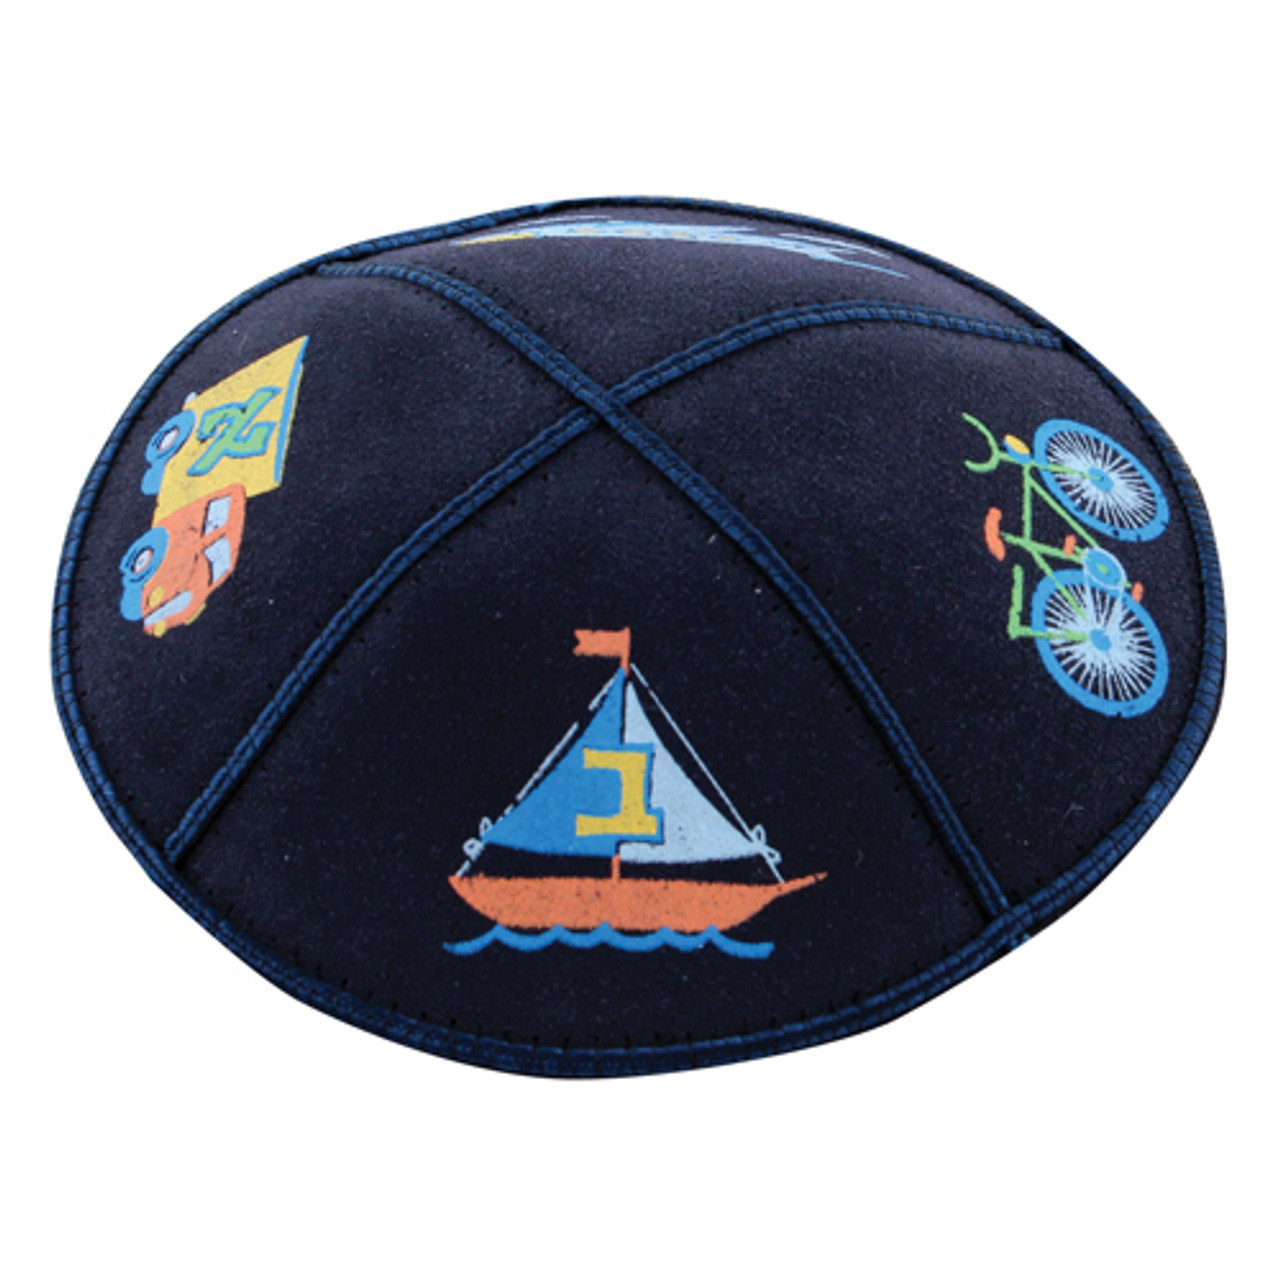 Leather Bike-Plane Kippah